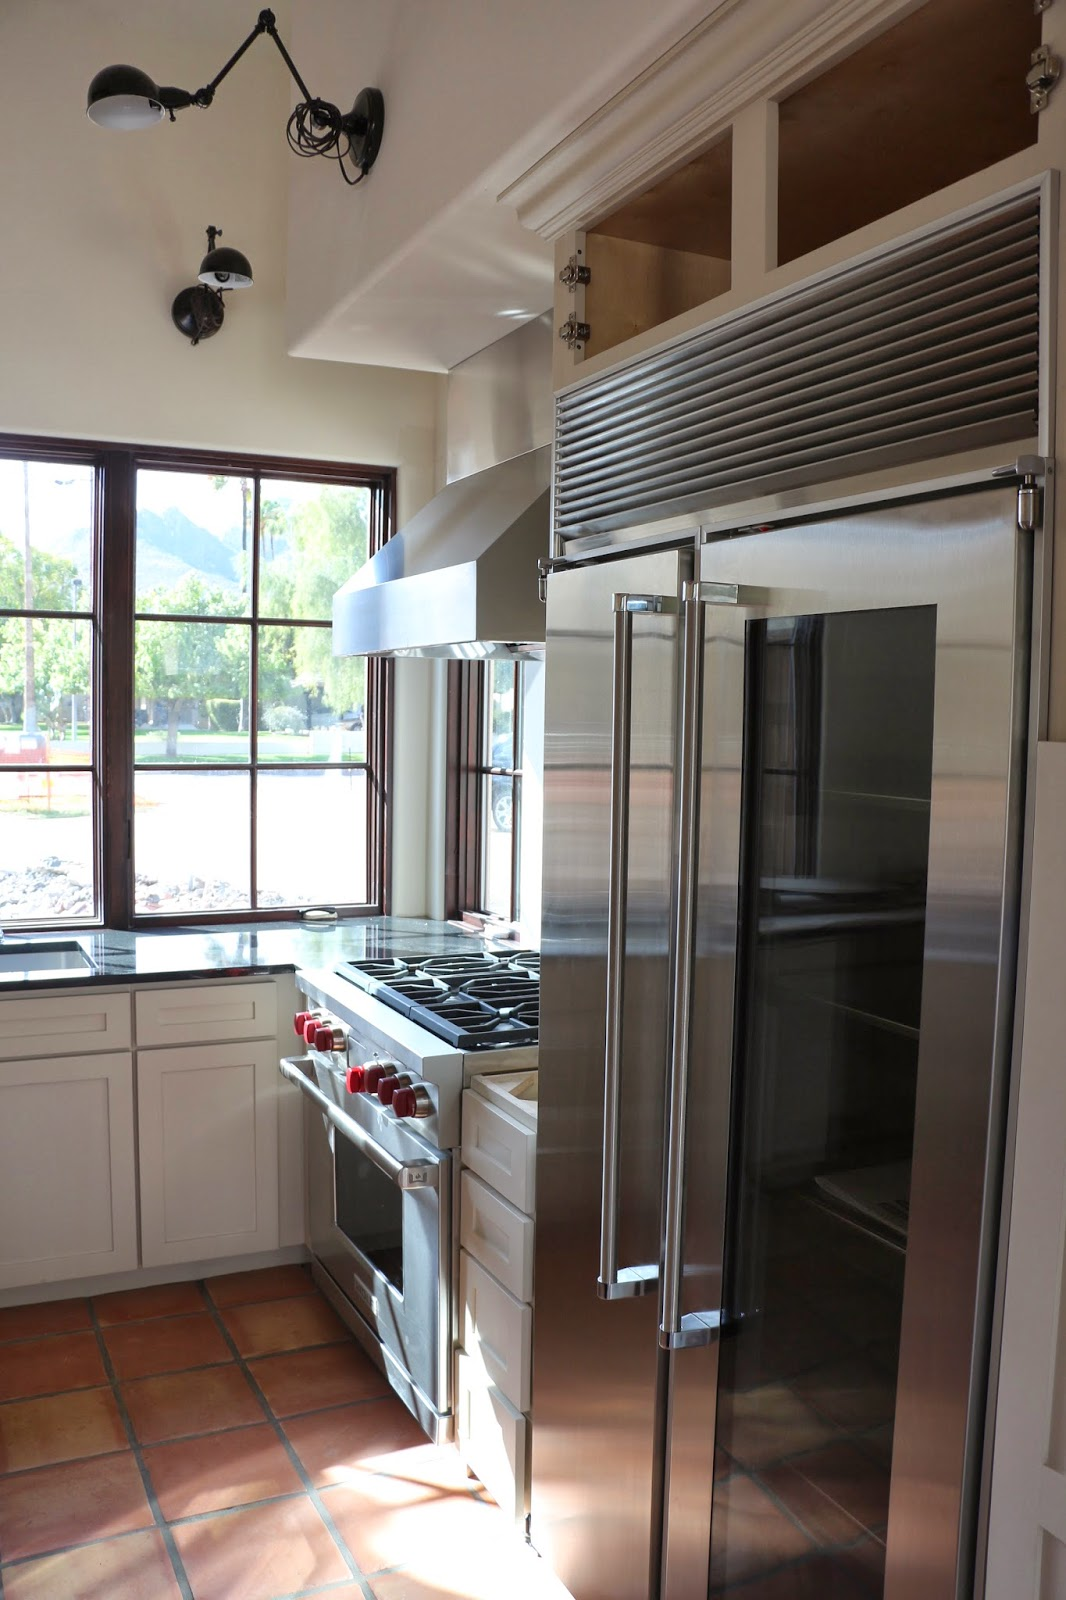 wolf stove with red knobs, marvel refrigerator, proline prov hood